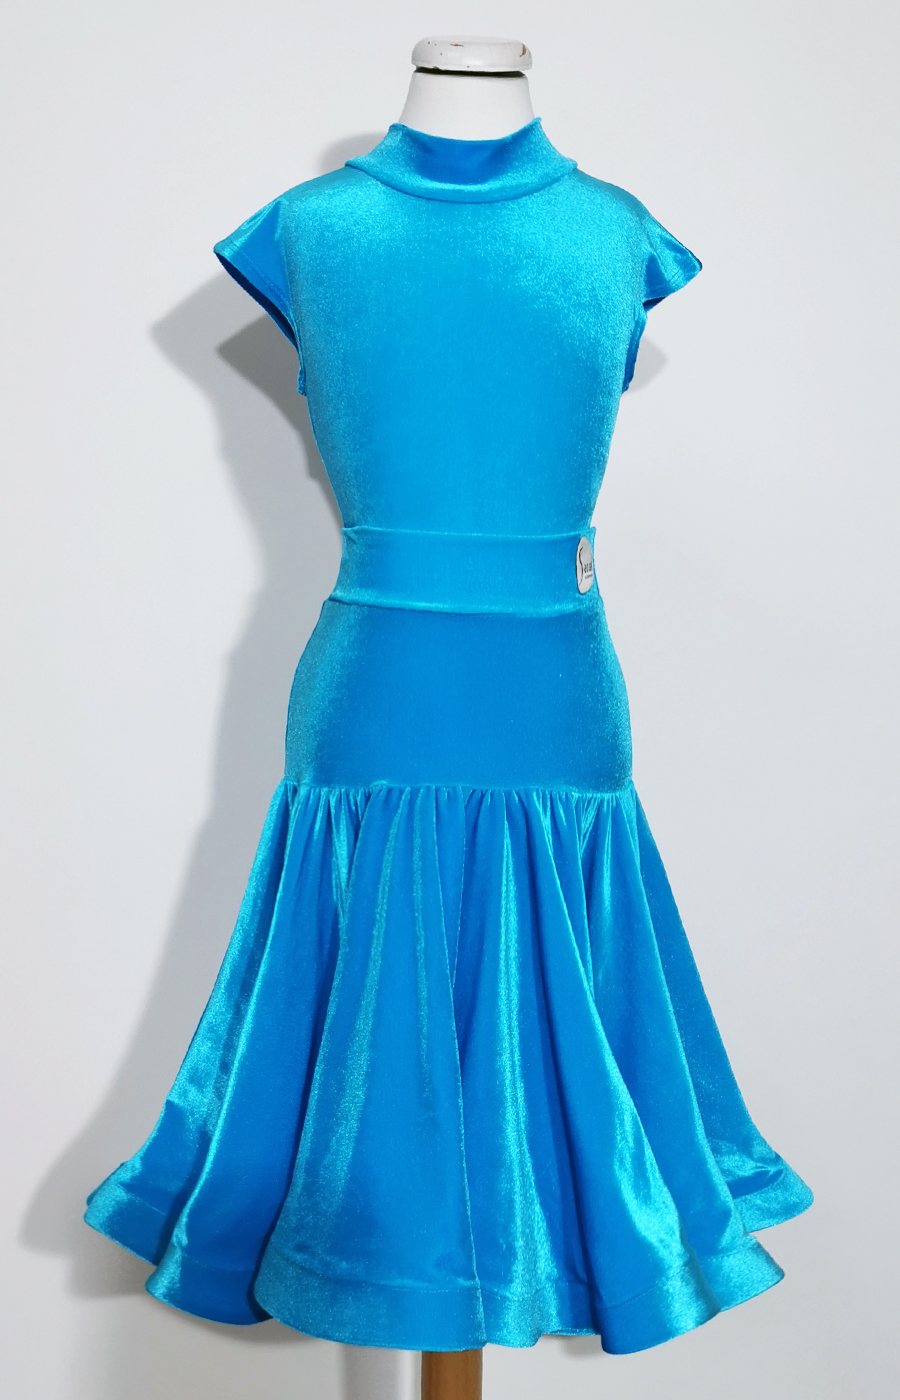 Juvenile turquoise velvet dress